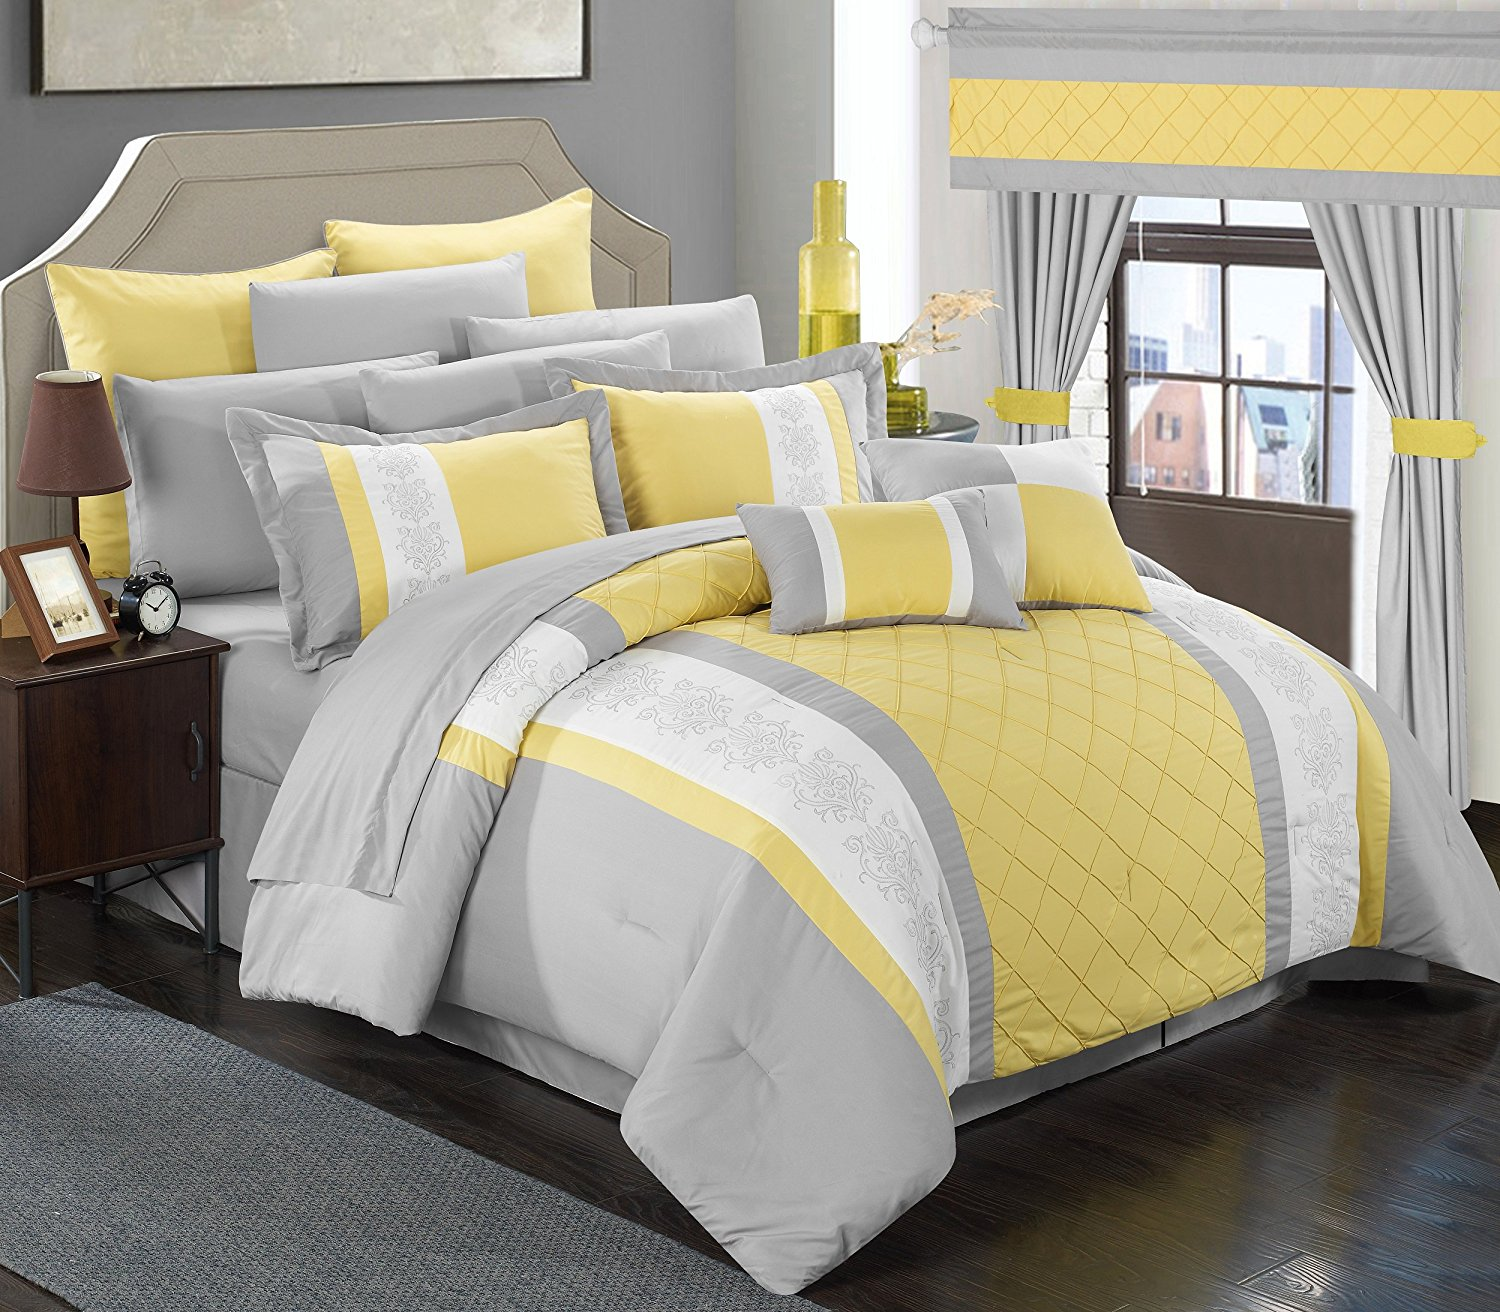 Chic Home Bedding Sheets Bed In Bag Comforter Set Yellow Size Queen Check Back Soon Blinq